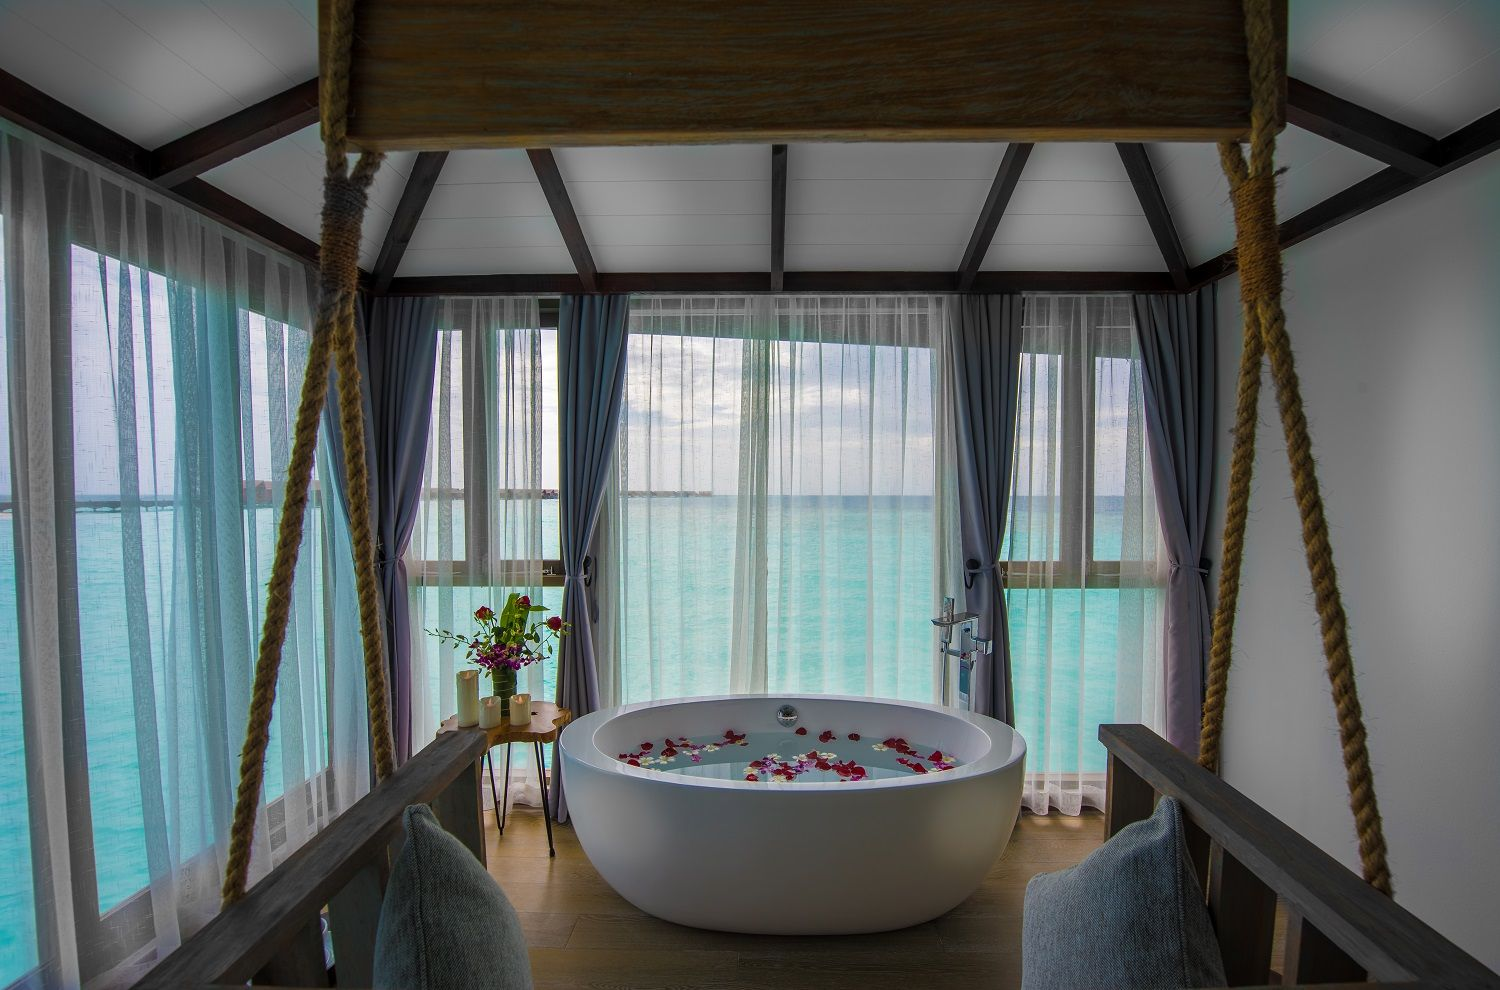 Relaxation amidst exotic beauty of the Maldives